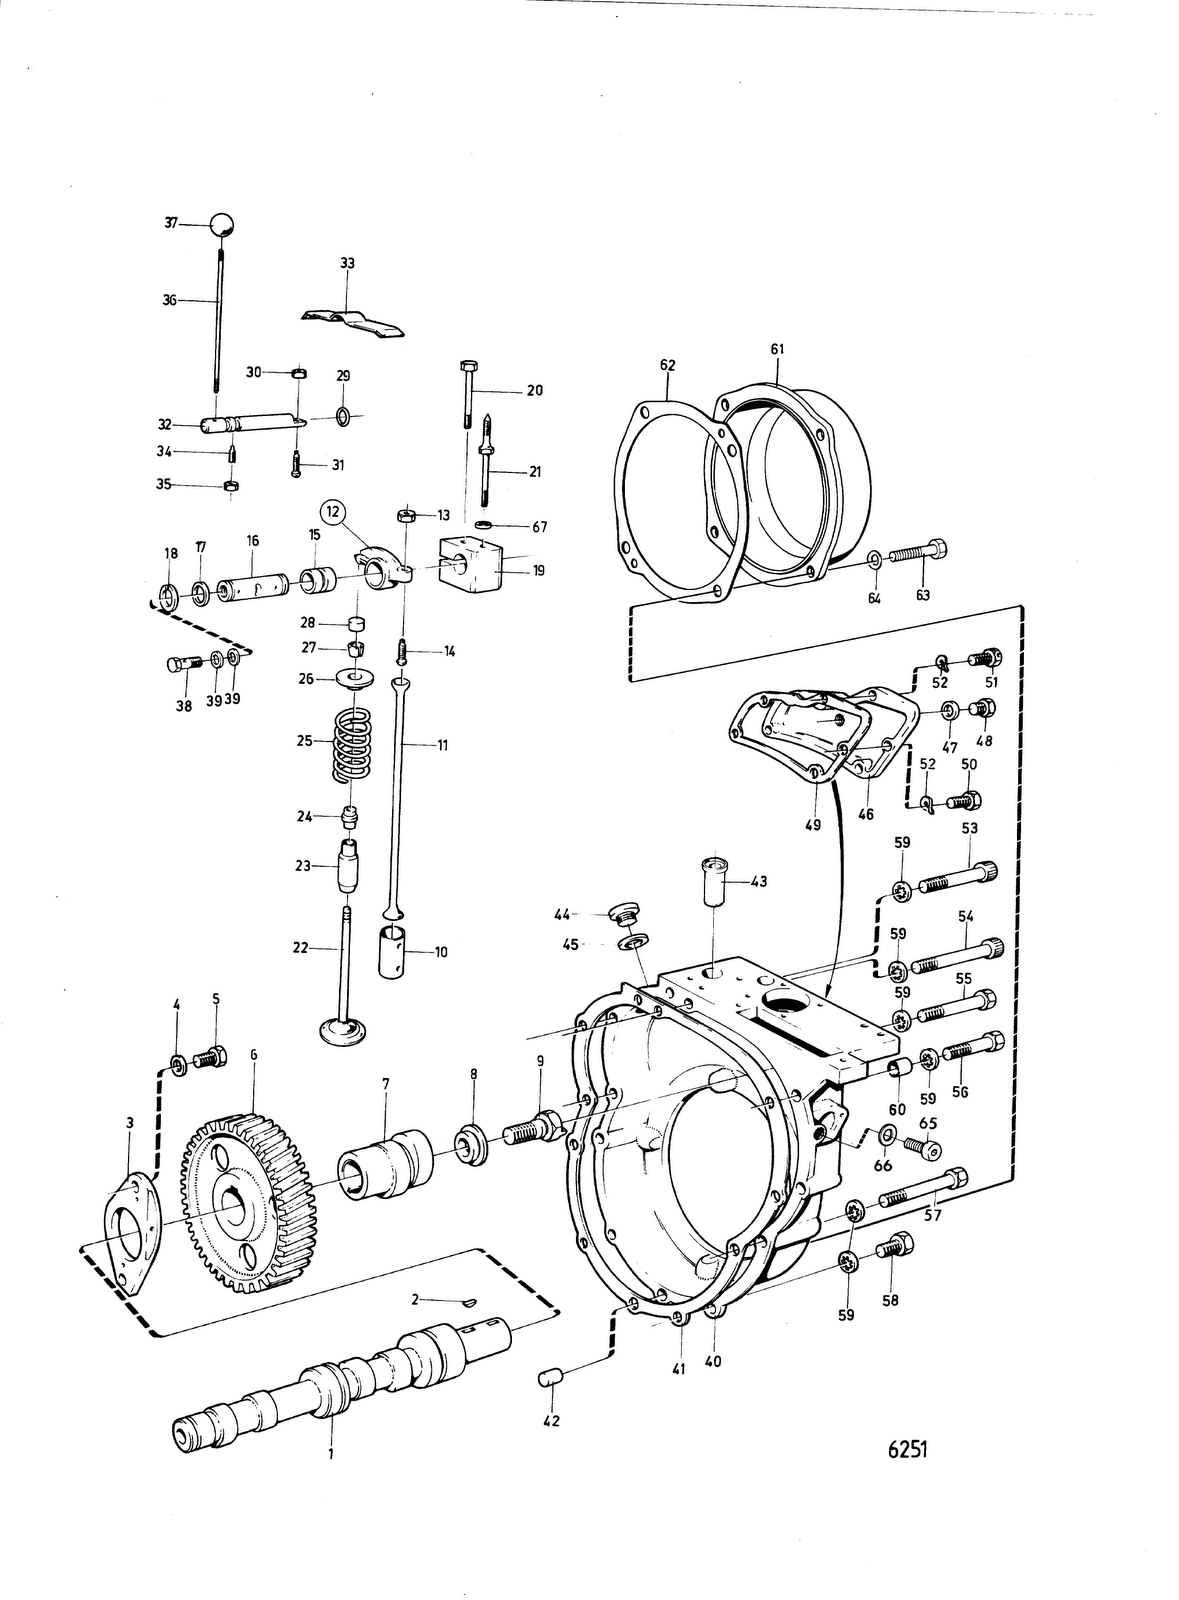 medium resolution of volvo penta md11c d manual repair engine marine md17c d online volvo penta md11c wiring diagram